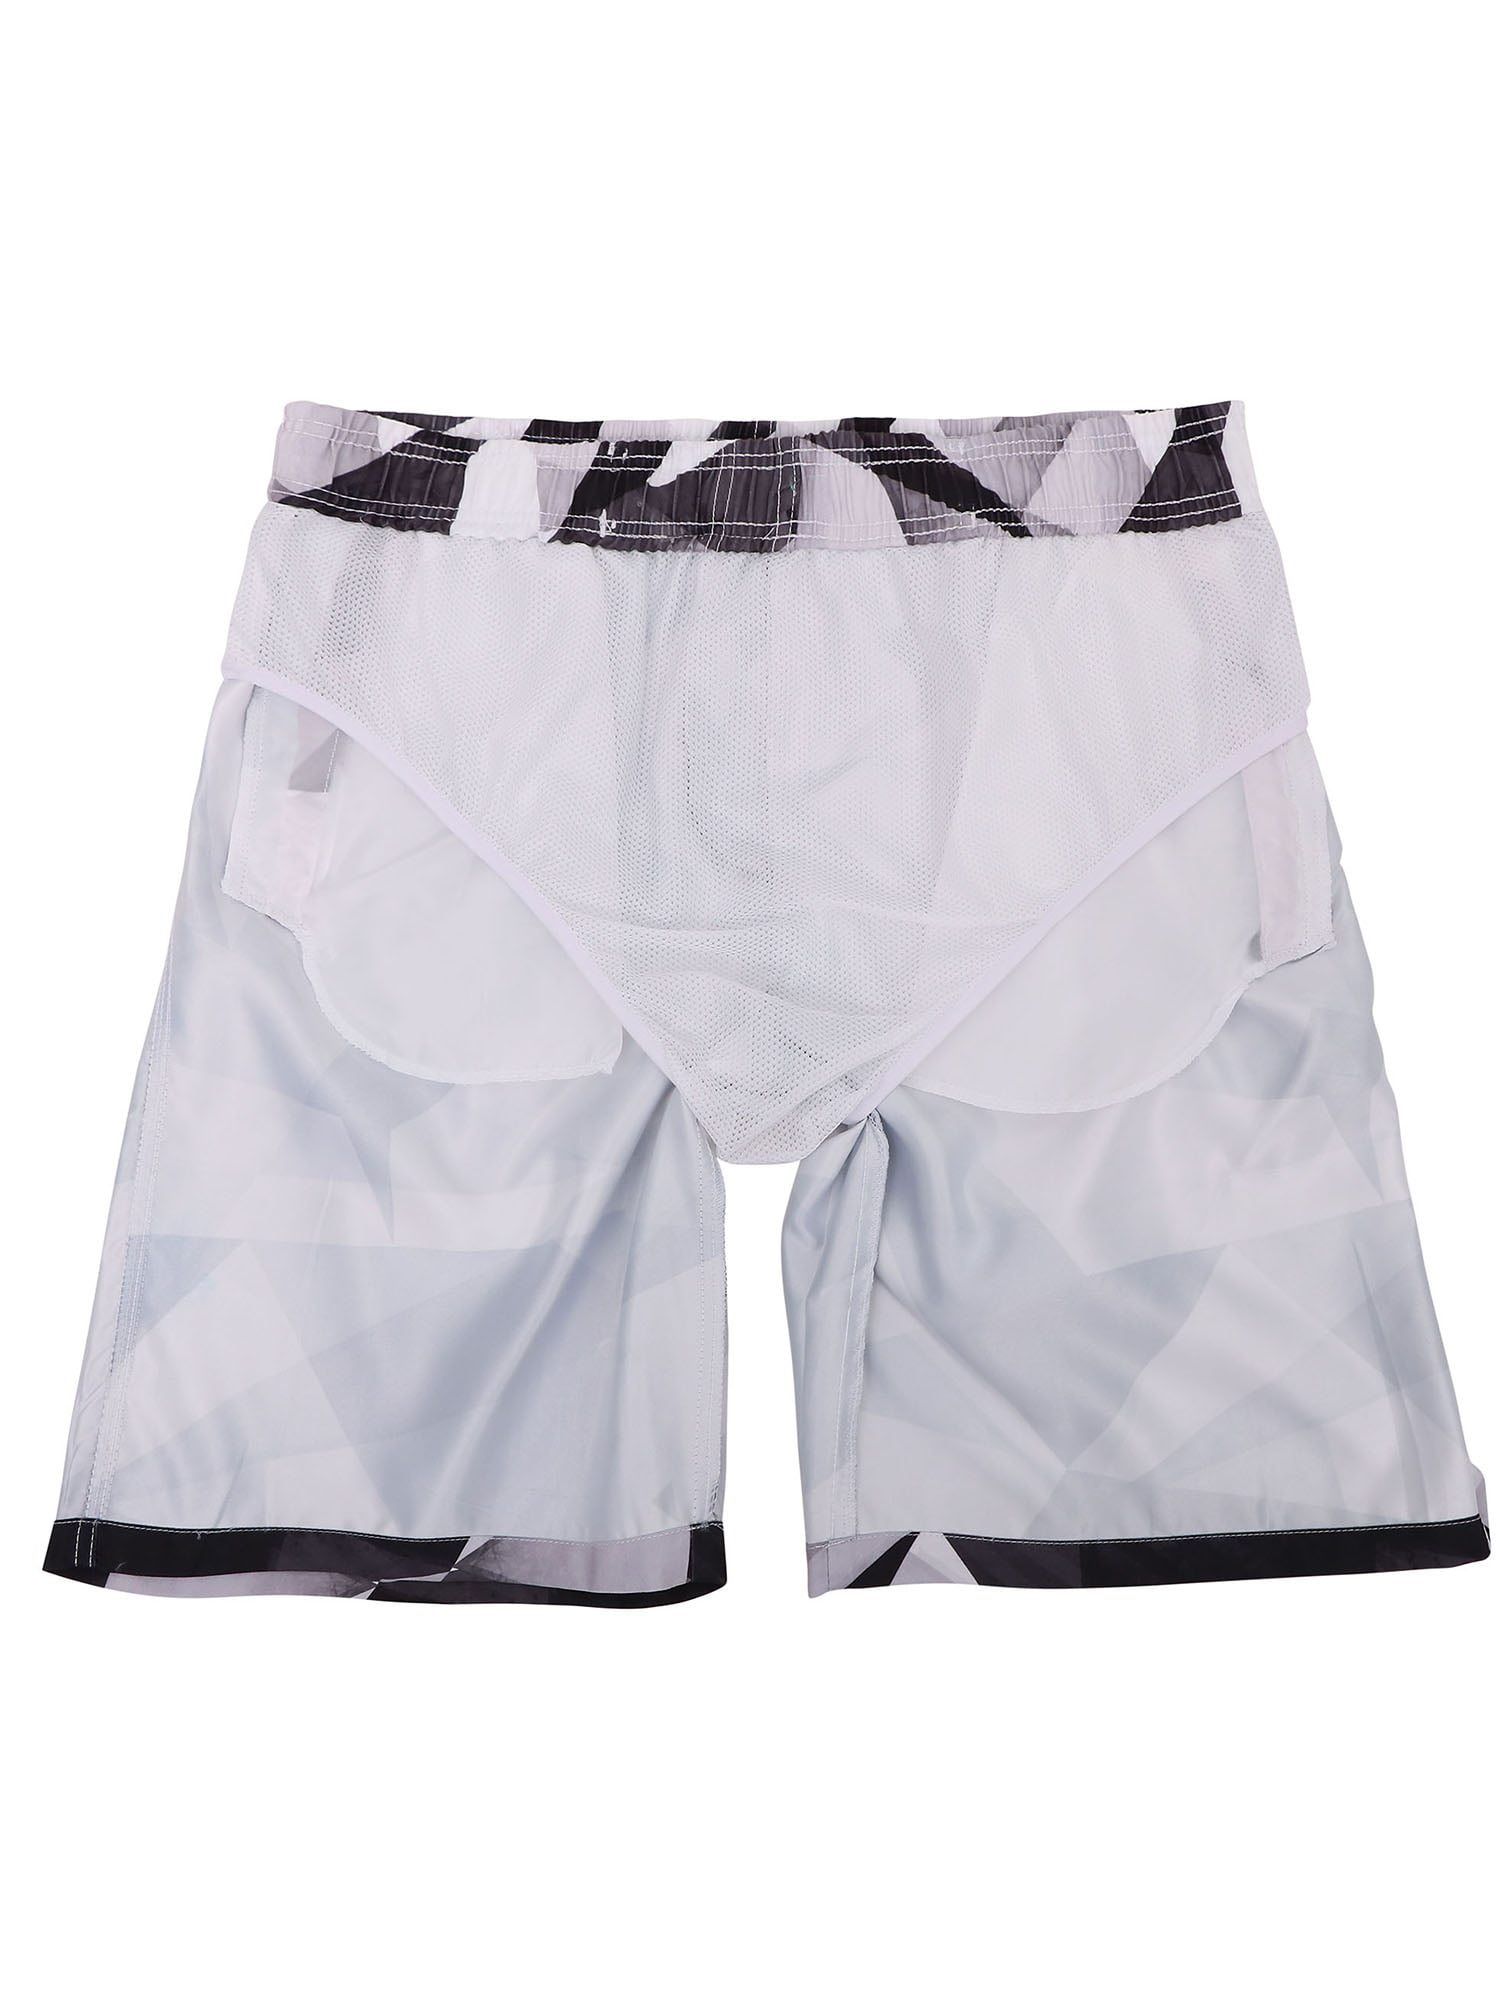 Hateone Mens Beach Shorts Quick Dry Summer Holiday Mesh Lining Swimwear Board Shorts with Pockets